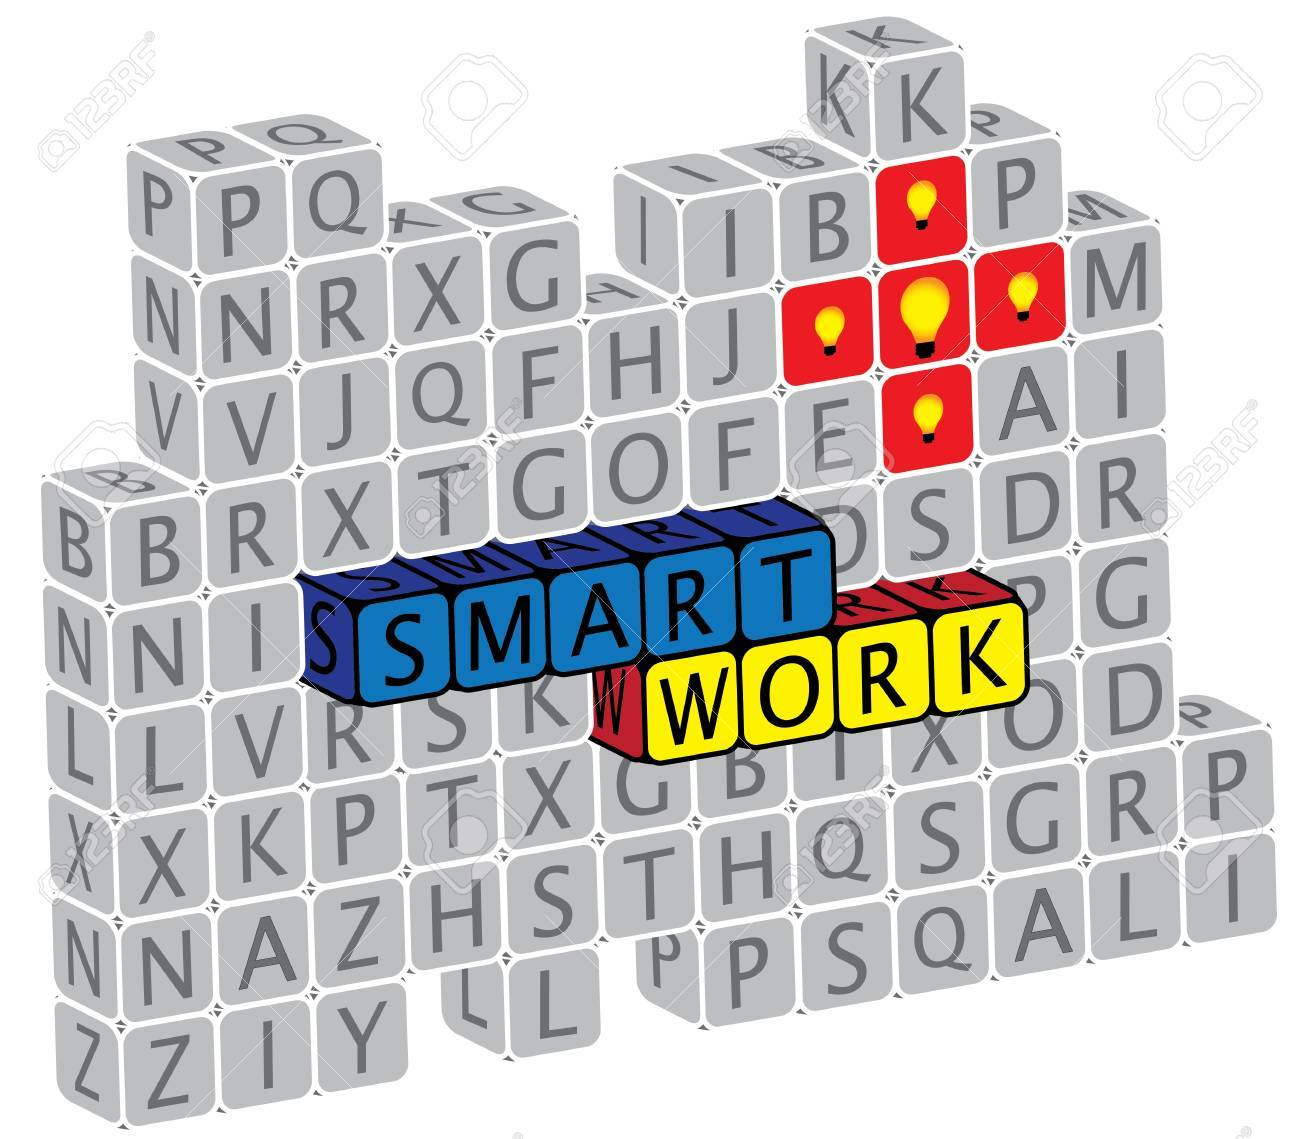 Illustration of word smartwork using alphabet(text) cubes. The graphic can represent concepts like creativity, innovation, problem solving, etc. Stock Vector - 16747546